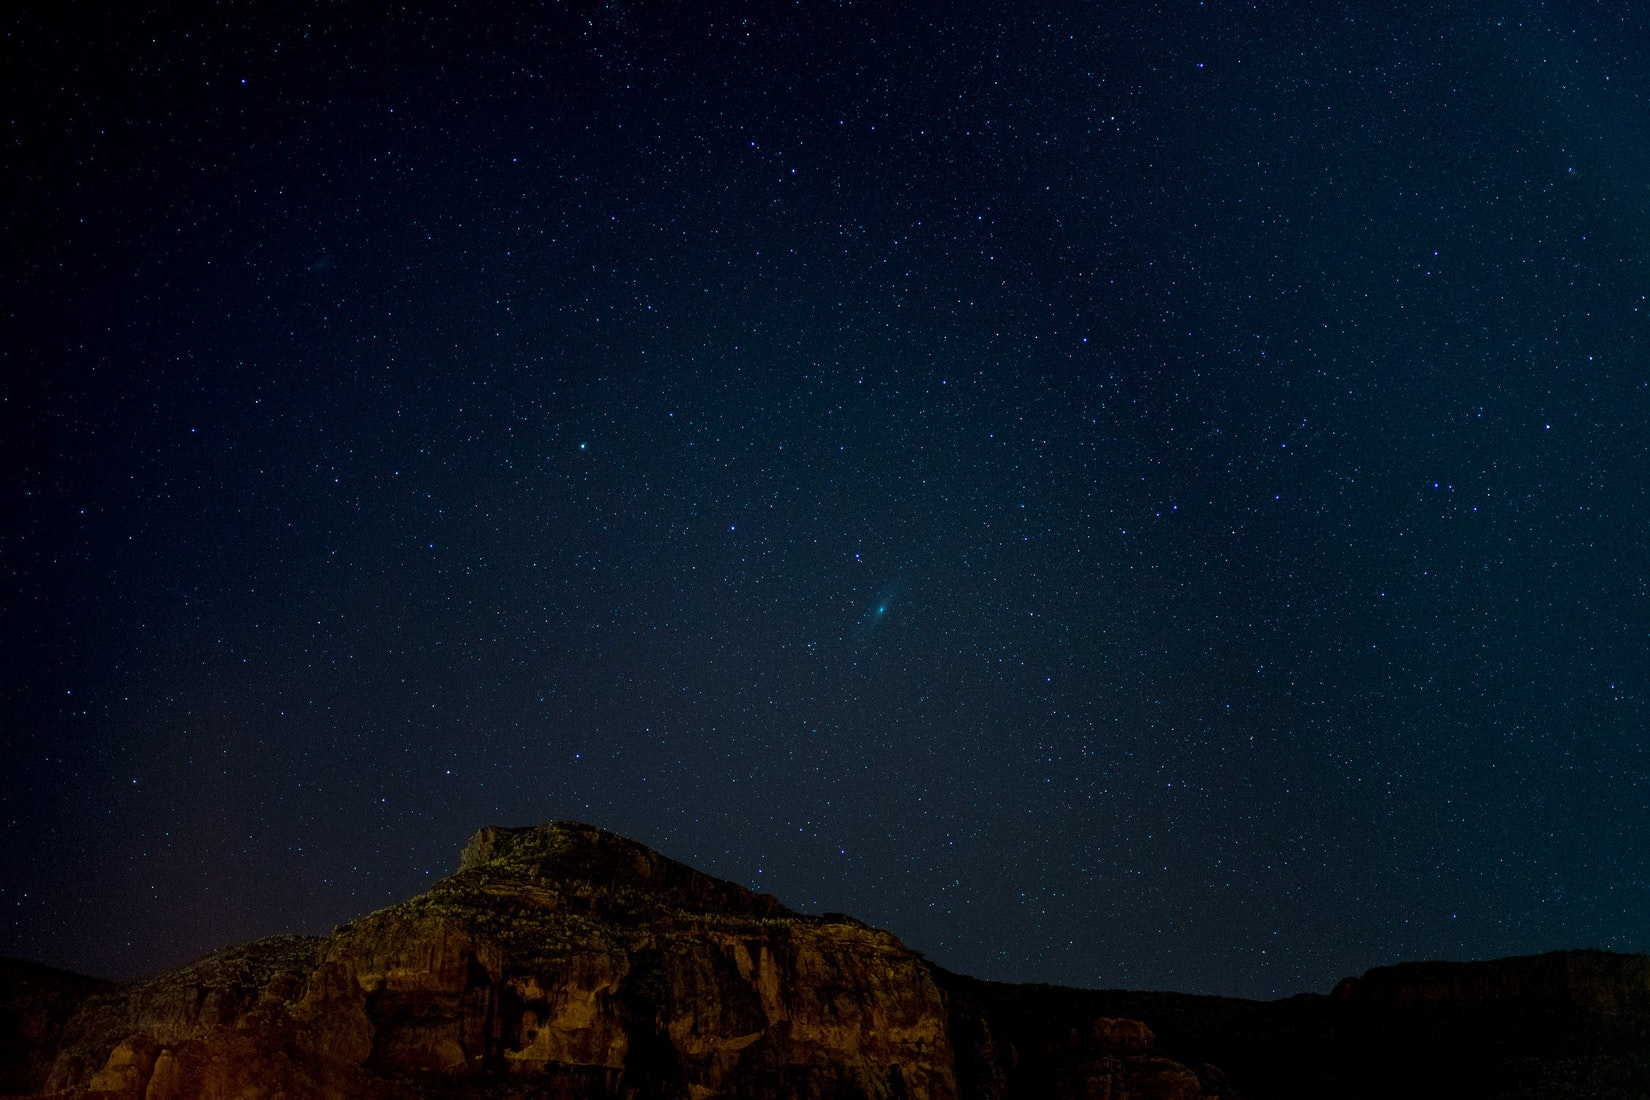 Dark sky star photo with mountains in the background